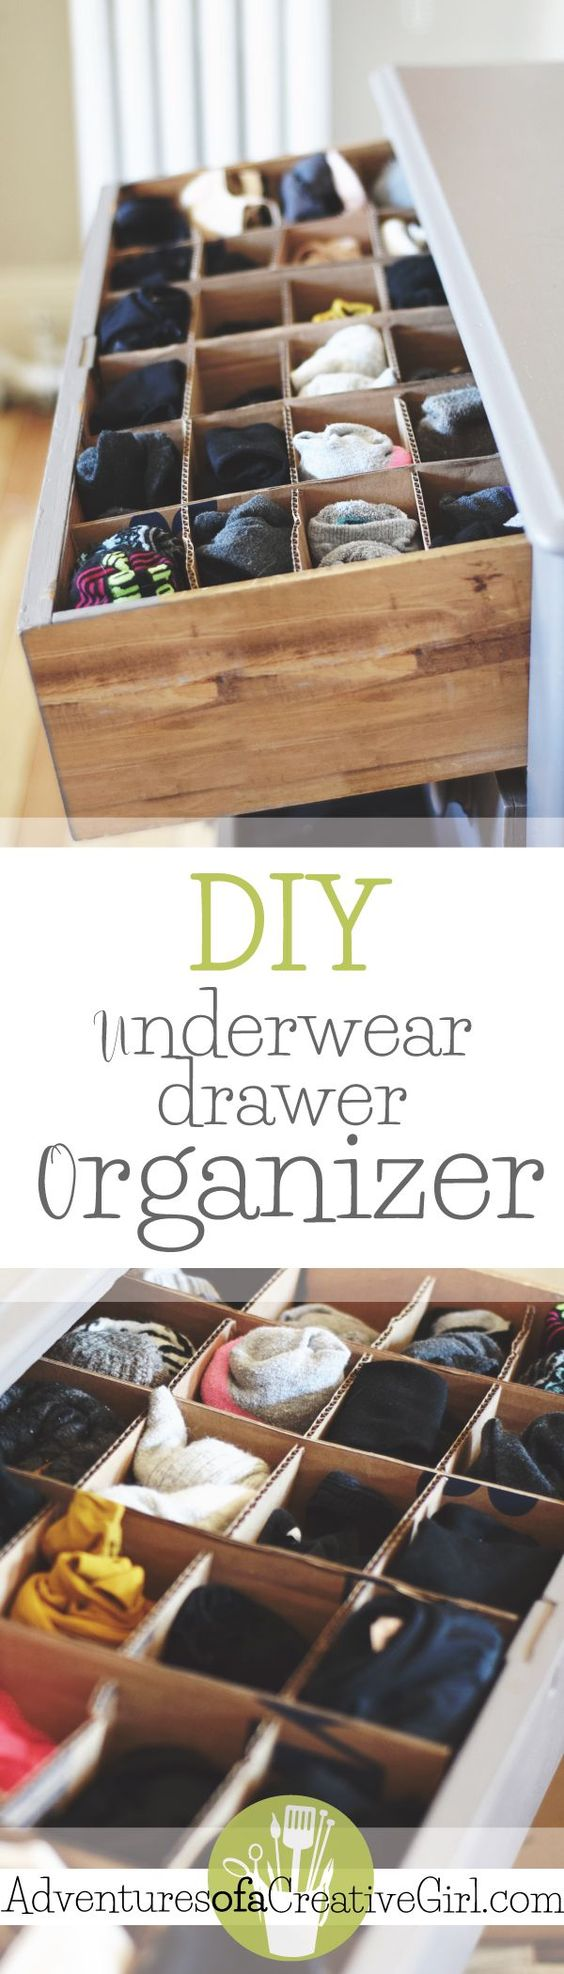 Learn how to make your own underwear drawer organizer for FREE with materials you have around the house! Step-by-step instructions with pictures.: